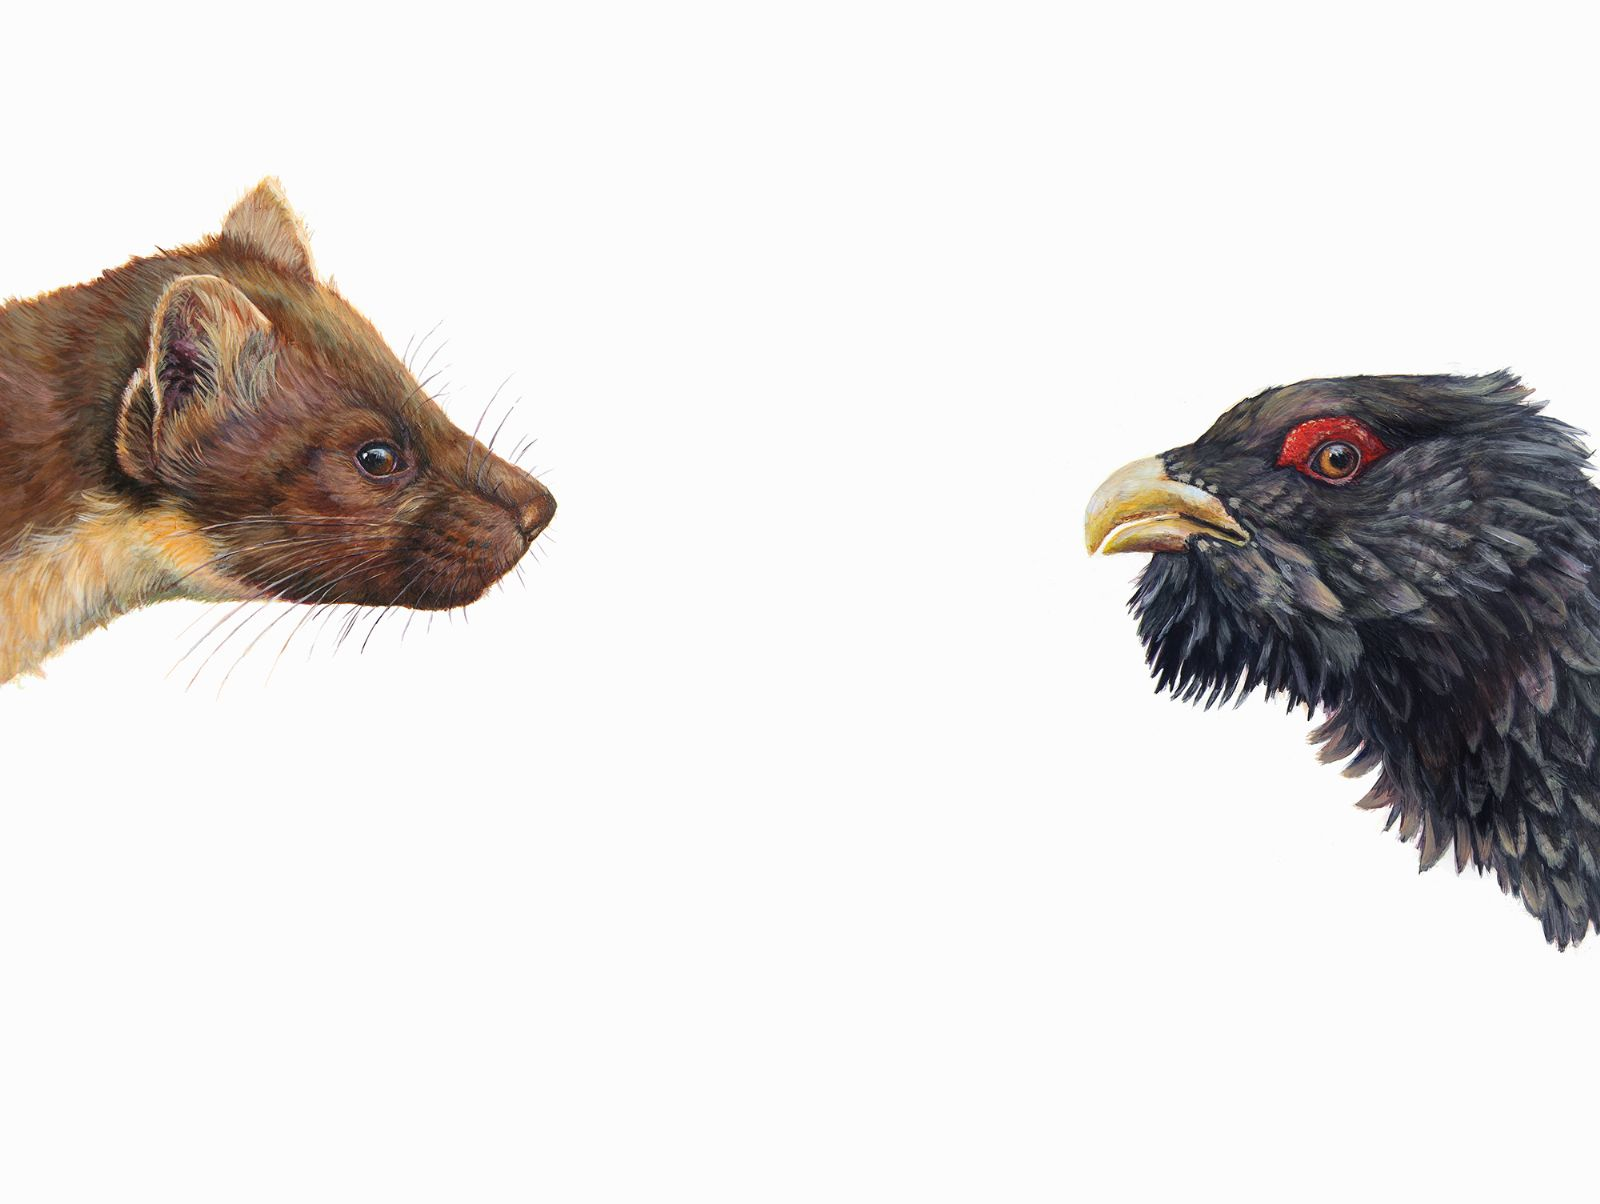 Top Predator: Marten and Capercaillie by Hazel Mountford